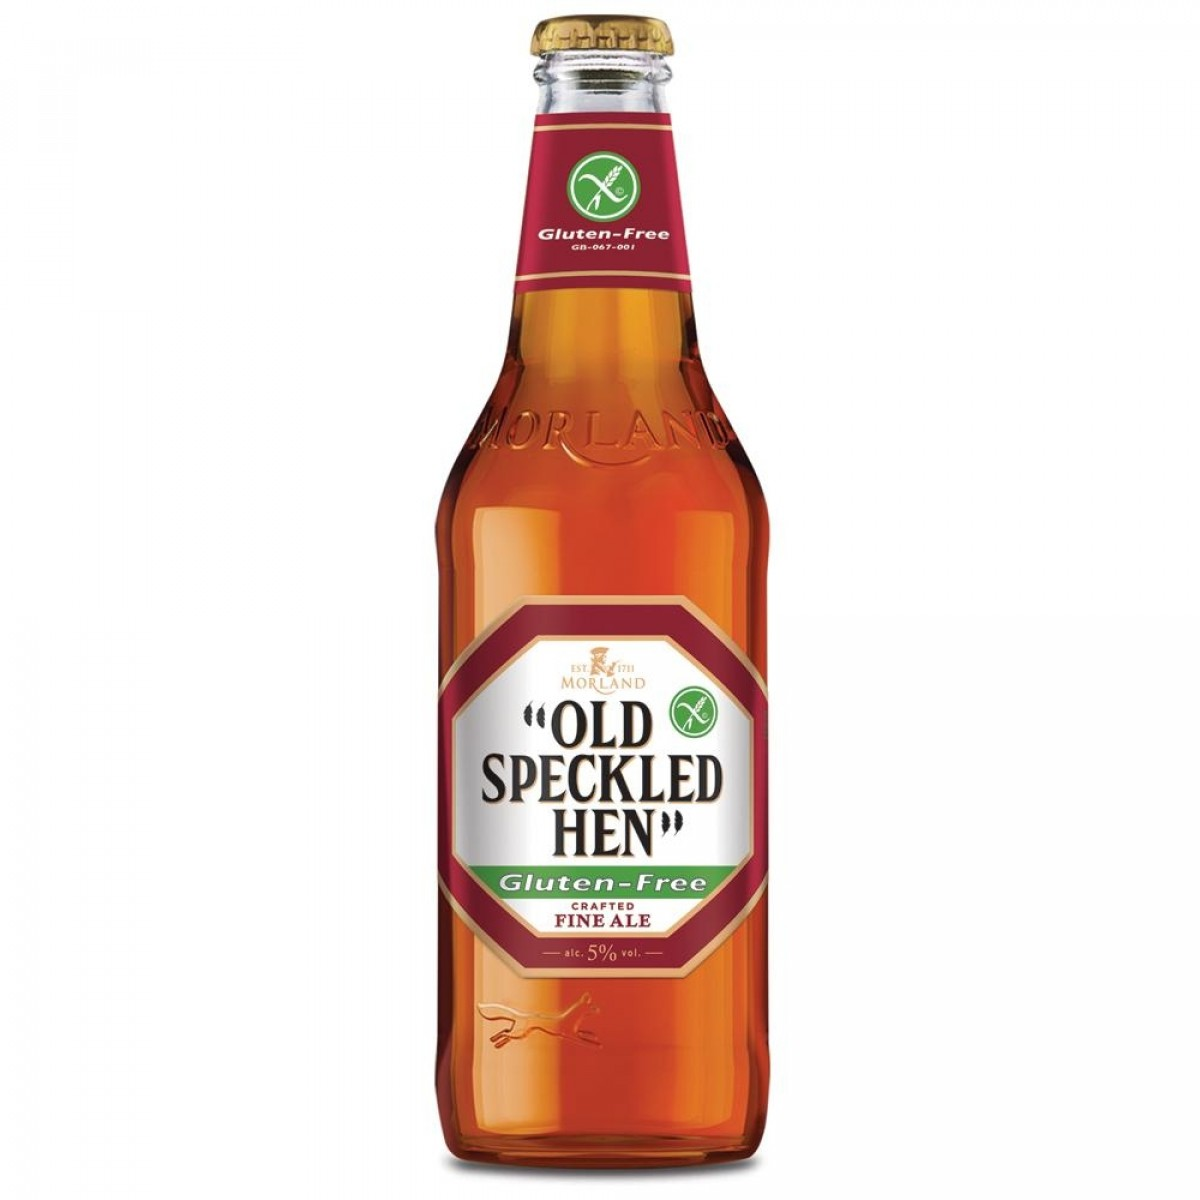 Old Speckled Hen